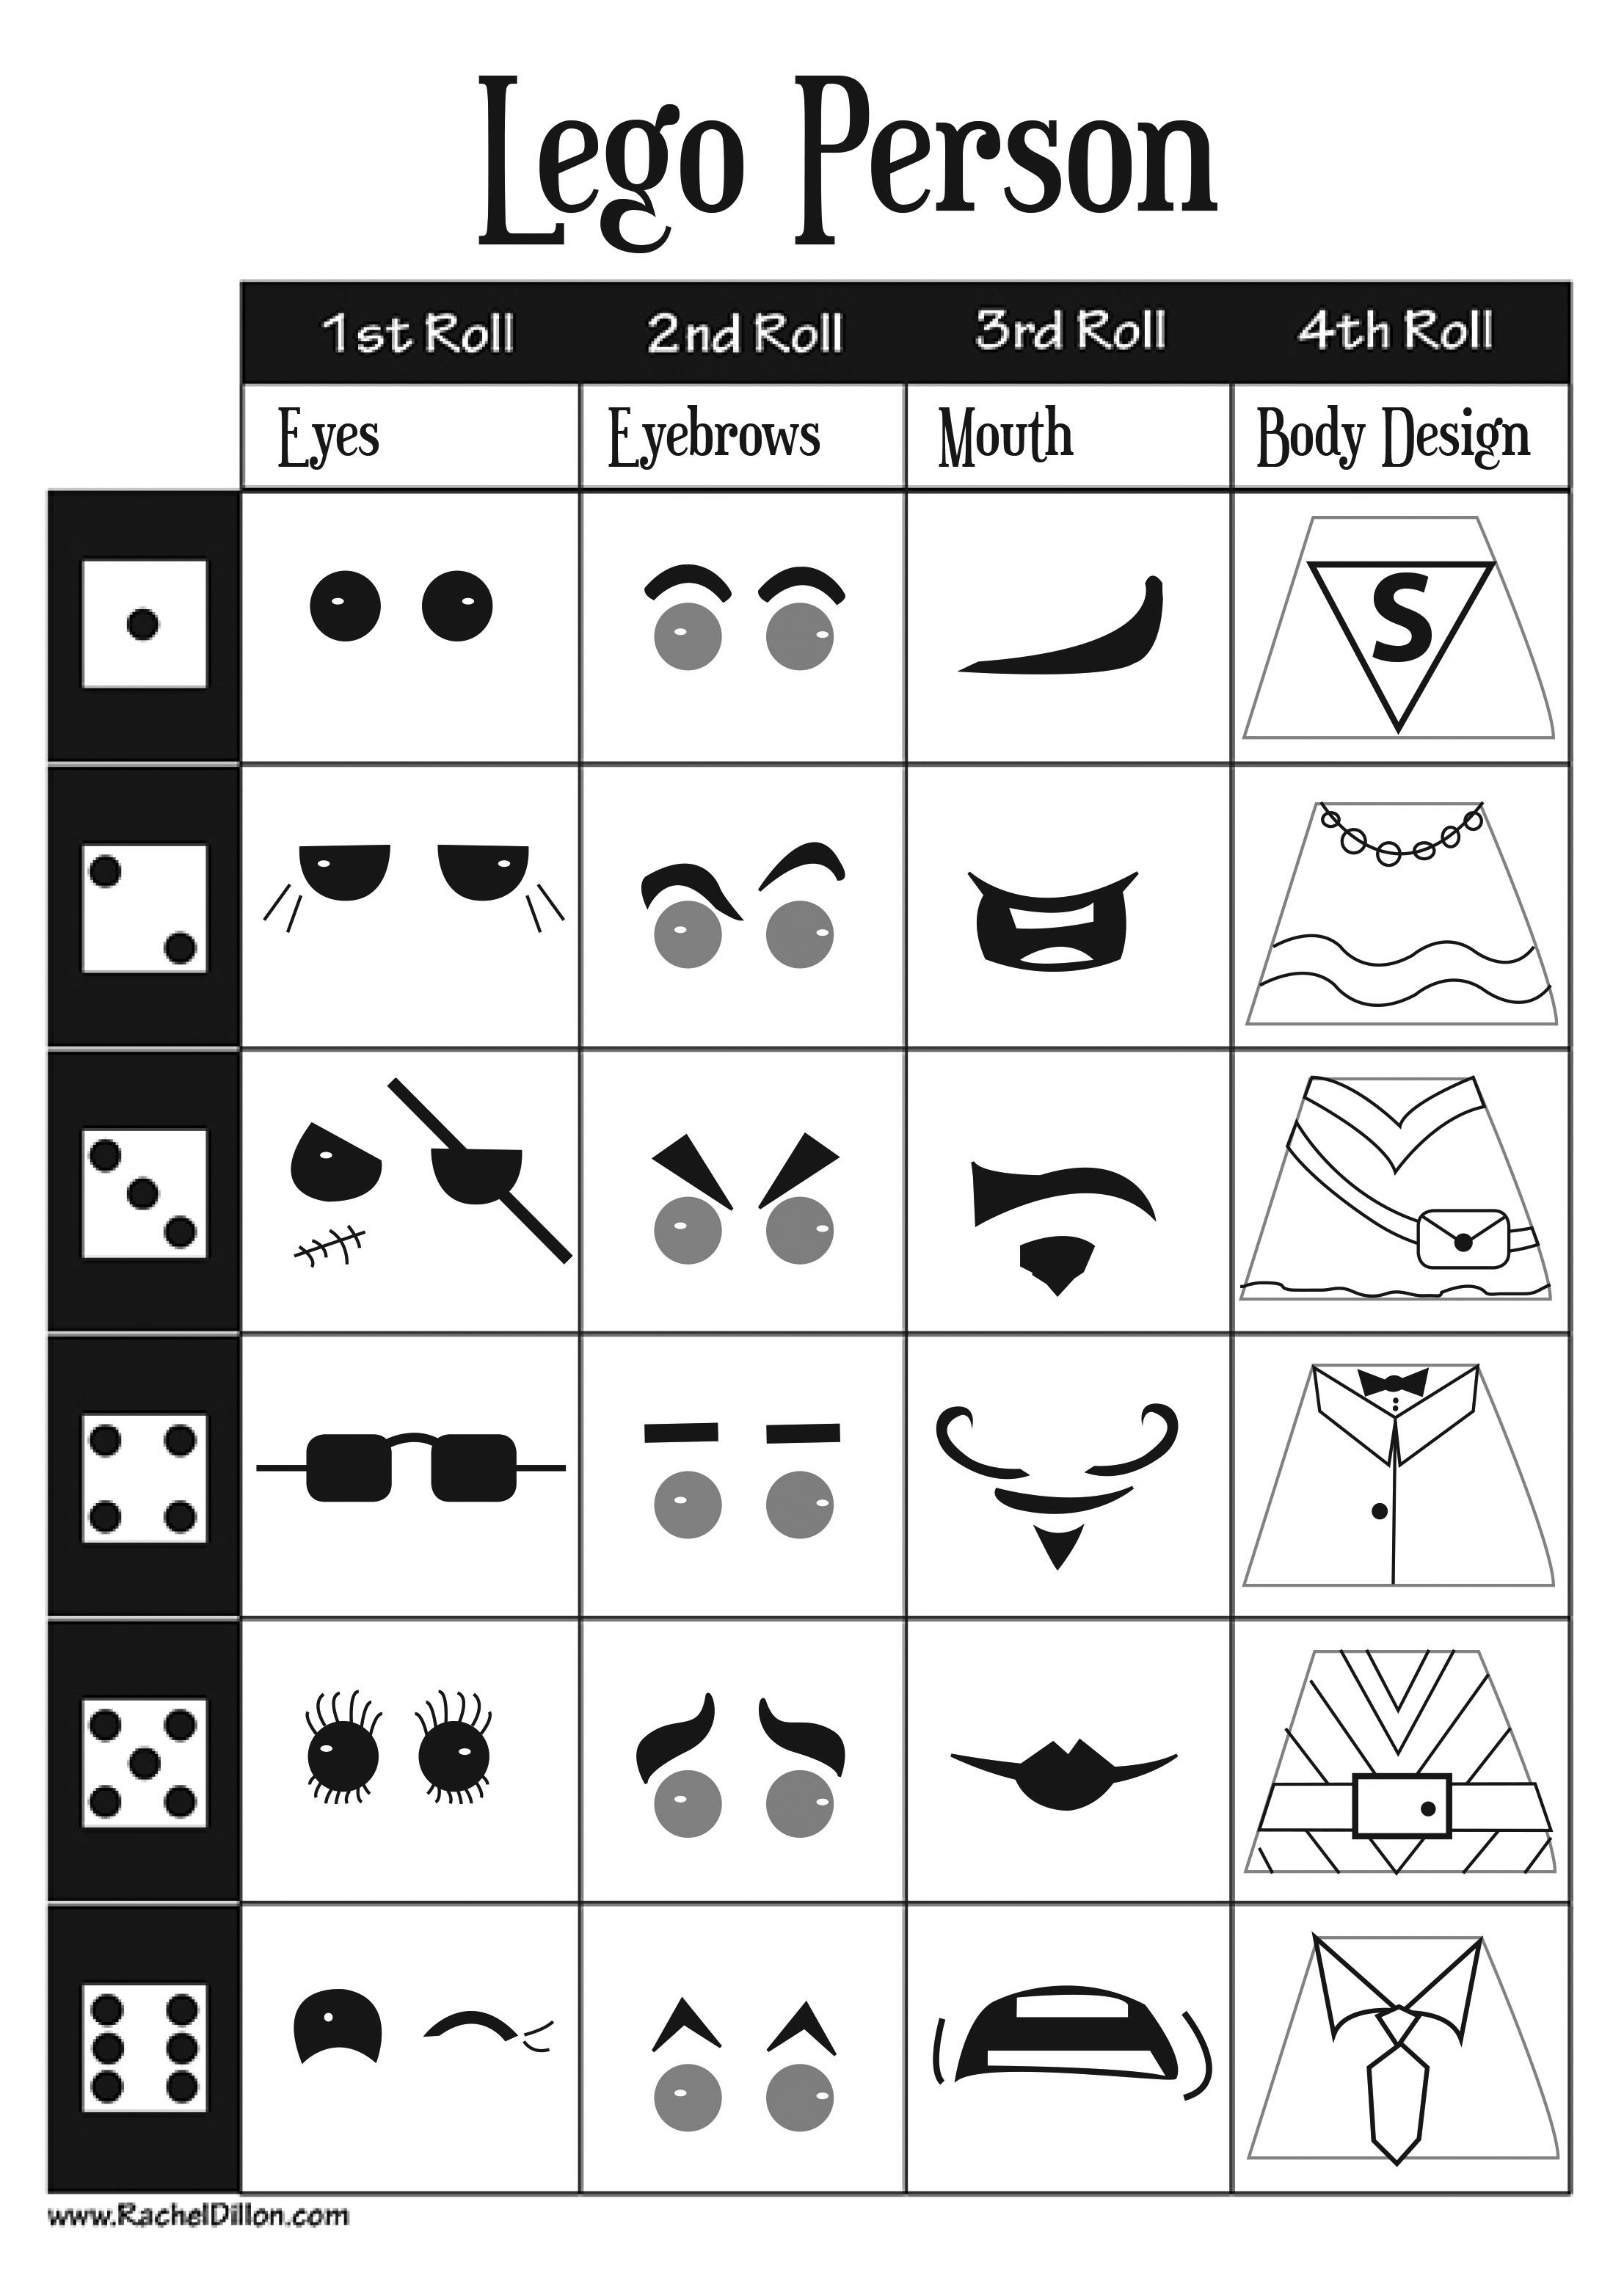 Lego Person Dice Game For Kids Art Project. This Is A Great Sheet - Roll A Monster Free Printable